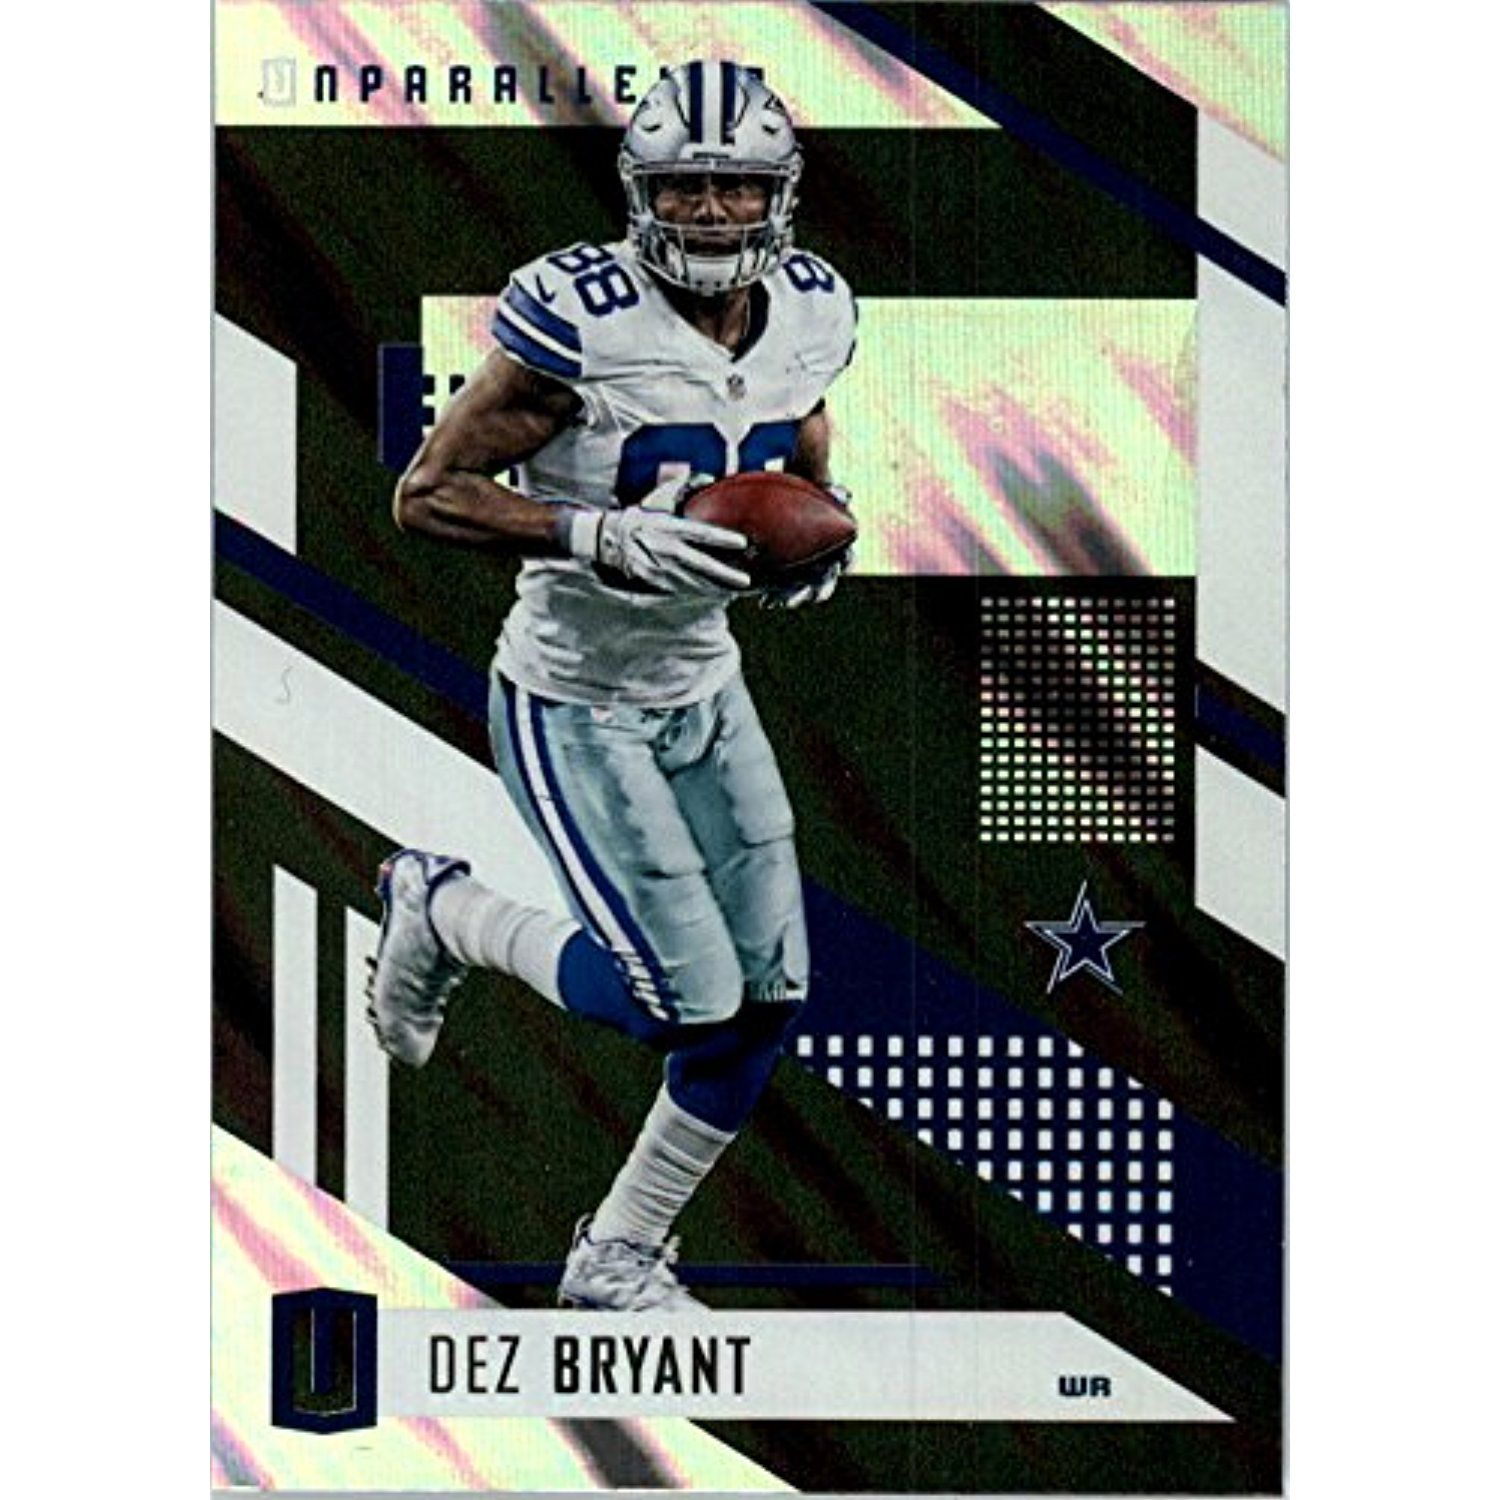 2017 Panini Unparalleled Sports collectibles, Sports